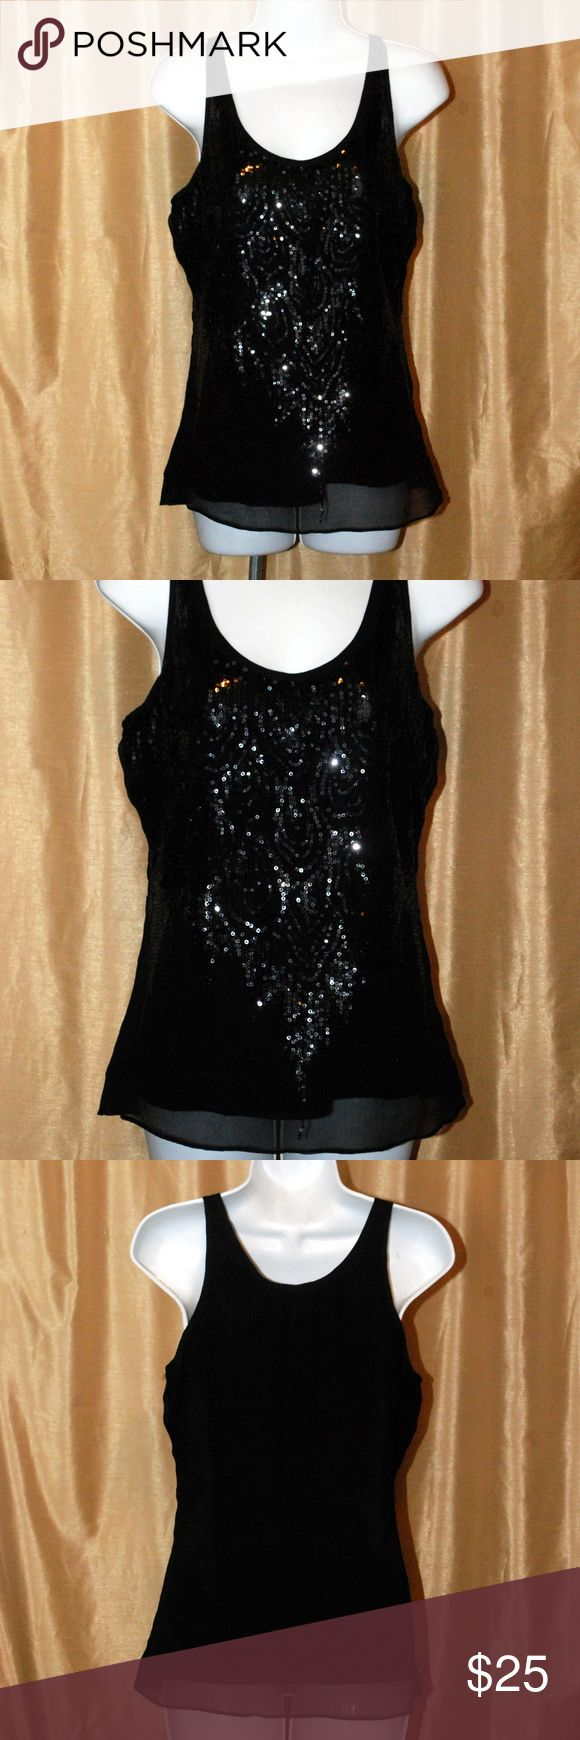 MM Couture Miss Me Black sequin tank top small MM Couture Miss Me Black sequin tank top small beautiful sequin top sheer overlay great for a night out on the town!!! Smoke free home MM Couture Tops Tank Tops